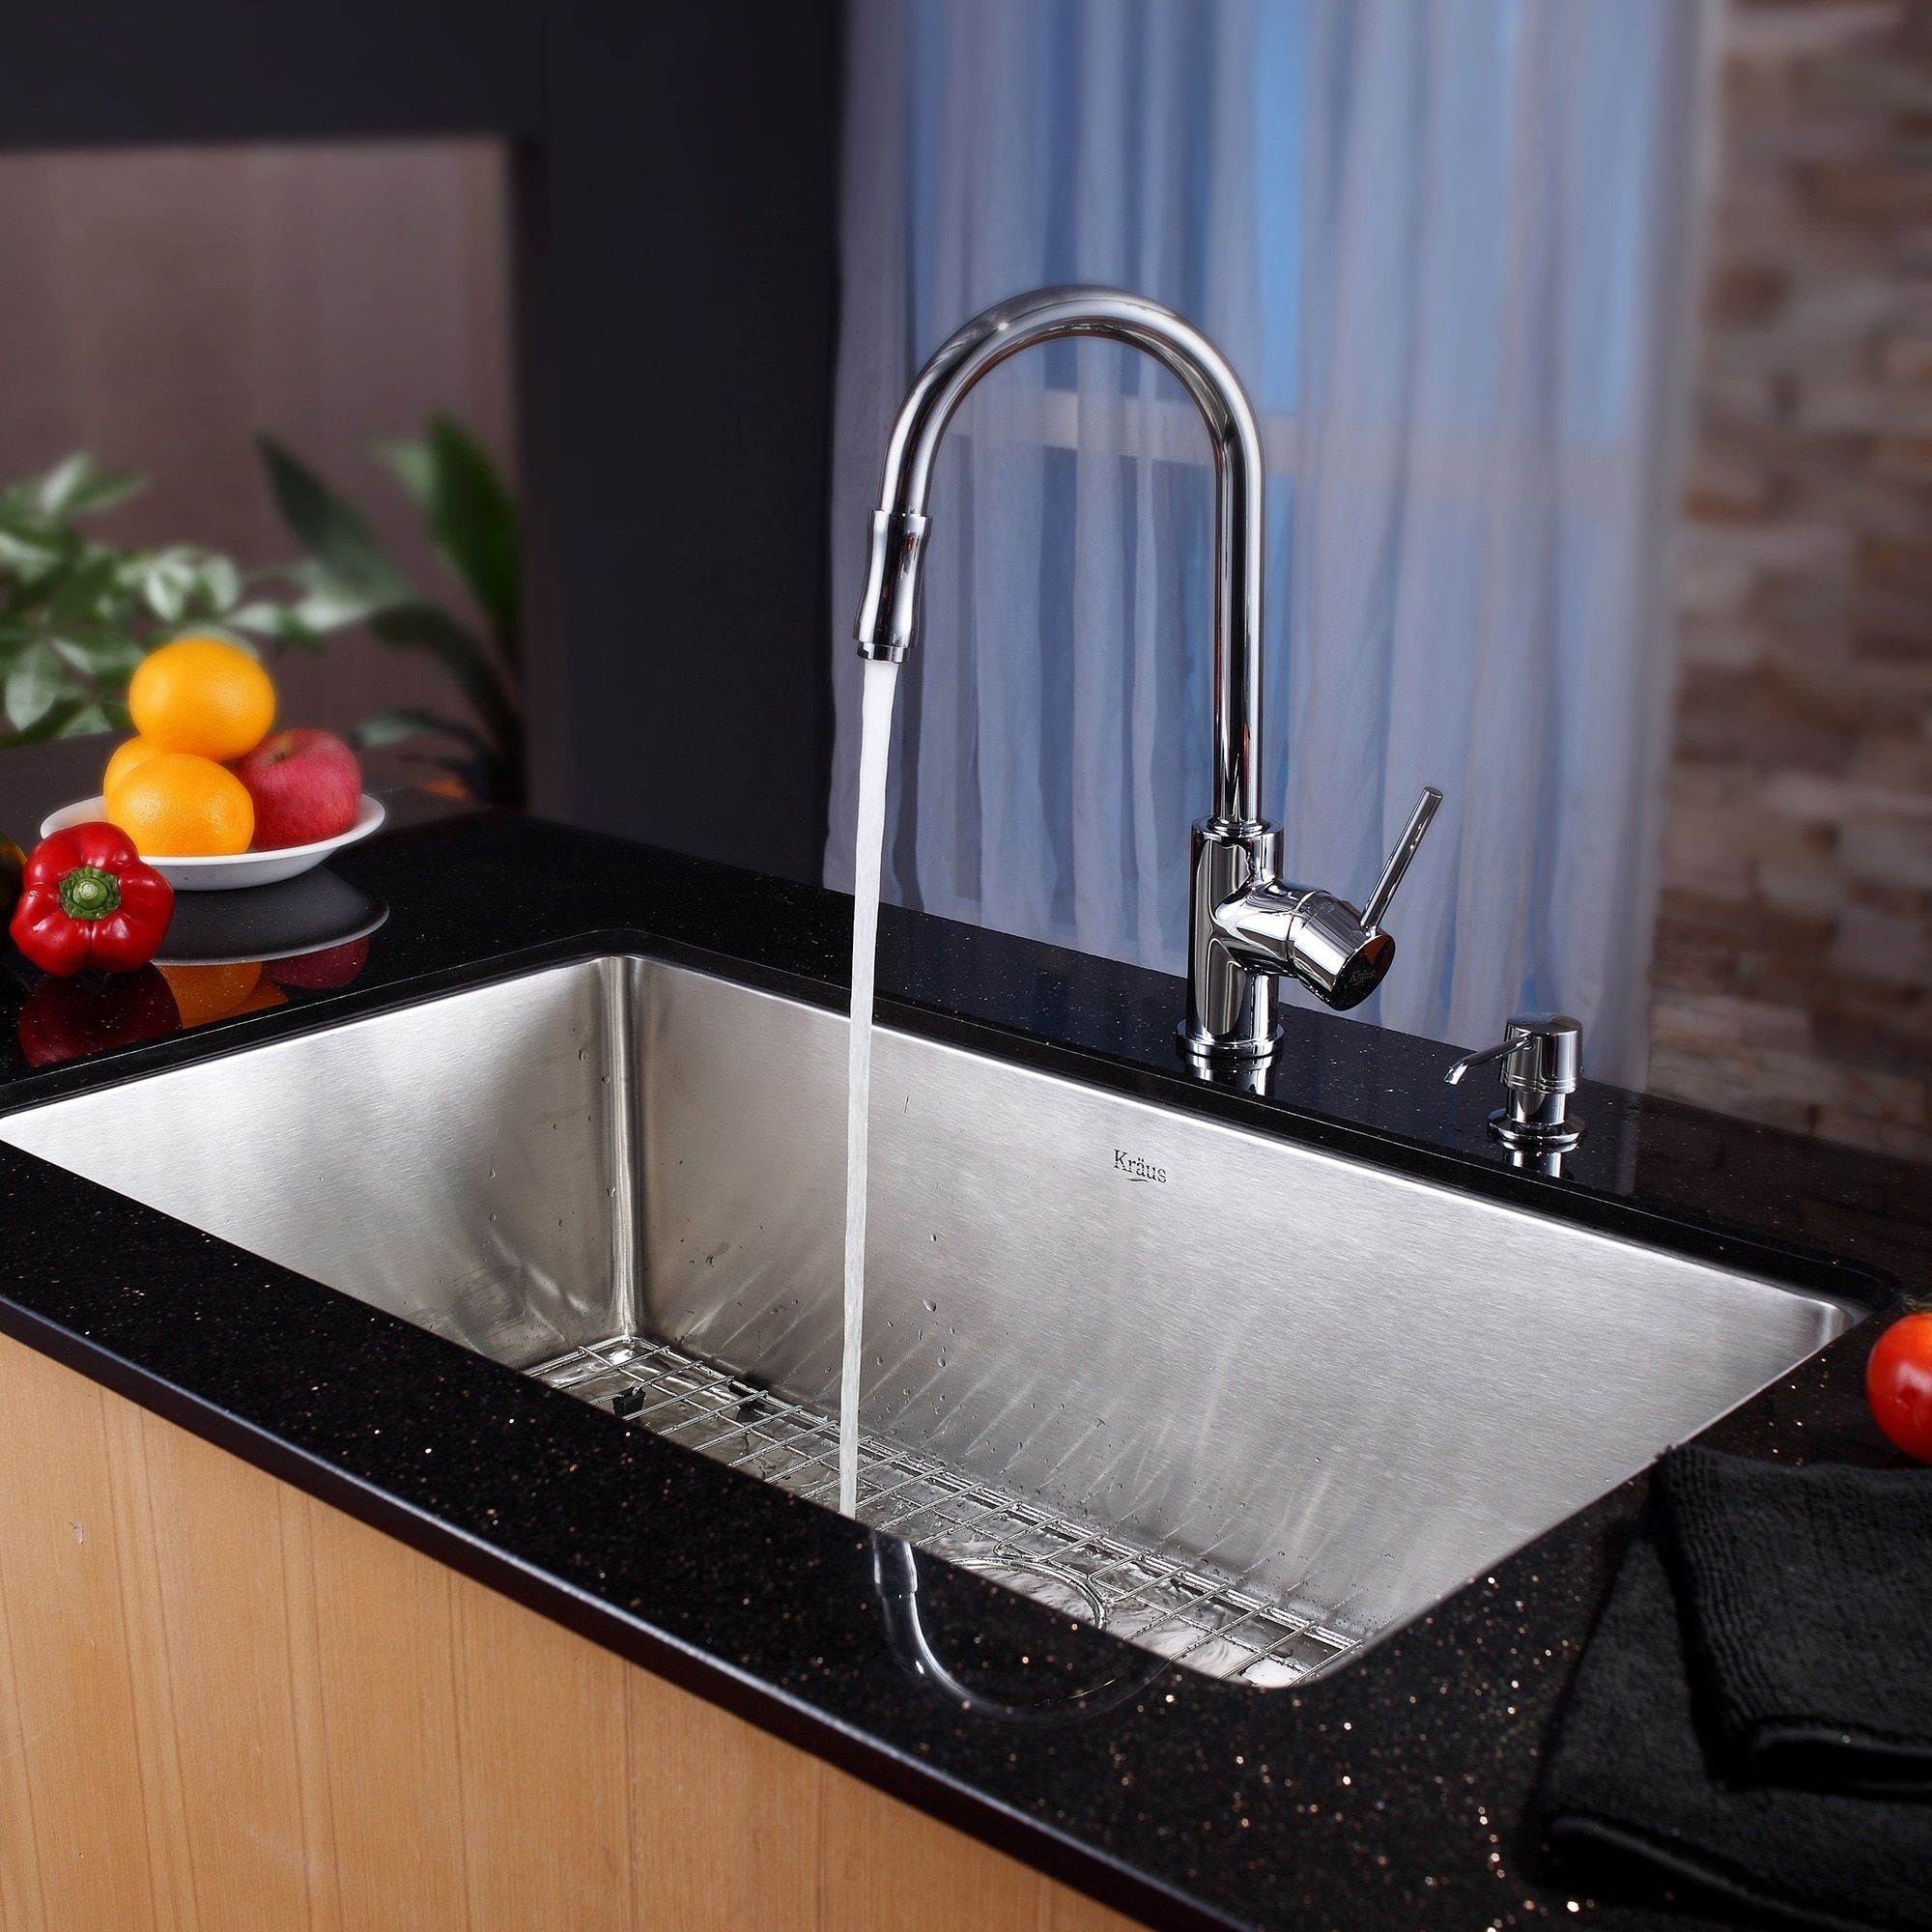 23 Corner Kitchen Sink Ideas For Best Cooking Experience Replacing Kitchen Countertops Farmhouse Sink Kitchen Single Bowl Kitchen Sink